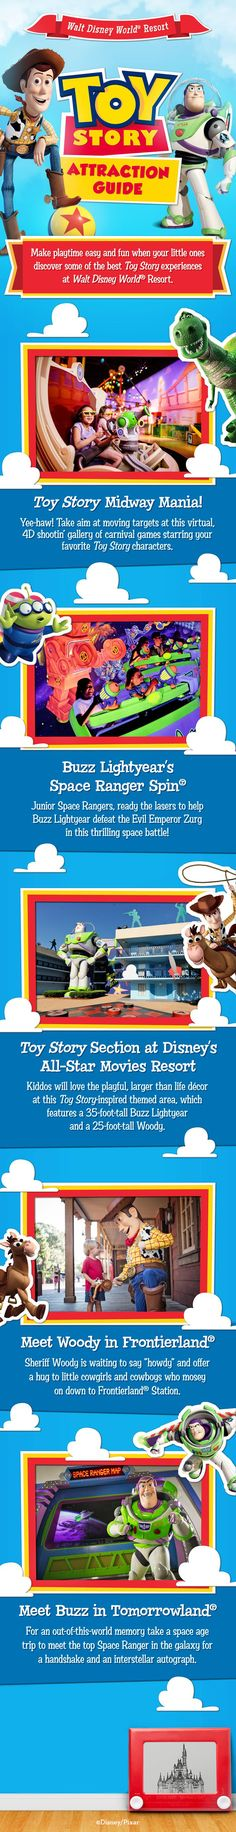 Make playtime easy and fun when your little ones discover some of the best Toy Story experiences at Walt Disney World Resort.